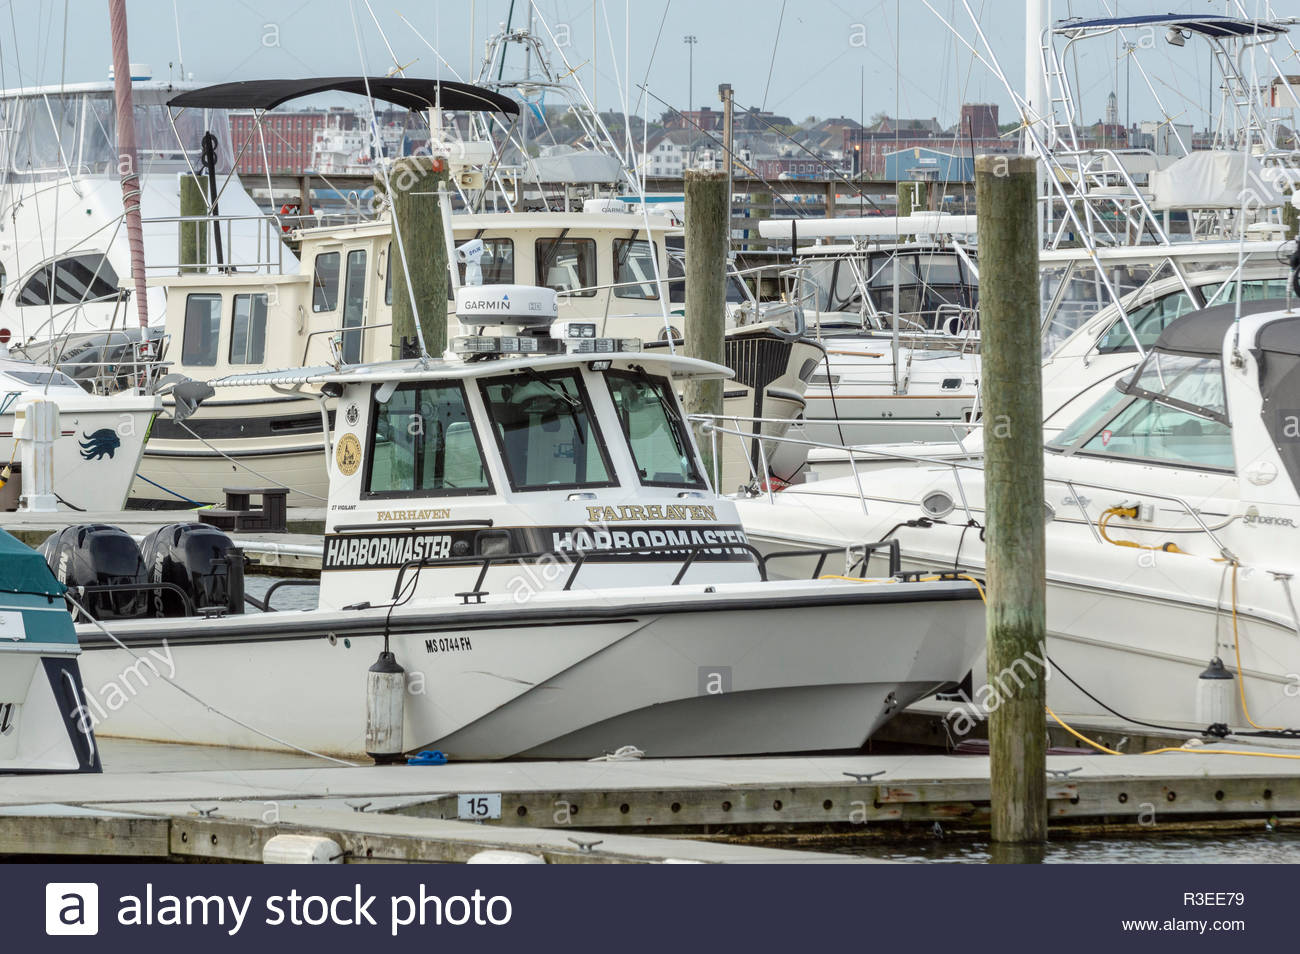 New Bedford, Massachusetts, USA - May 18, 2018: Dense forest of boats moored at Pope's Island in New Bedford - Stock Image